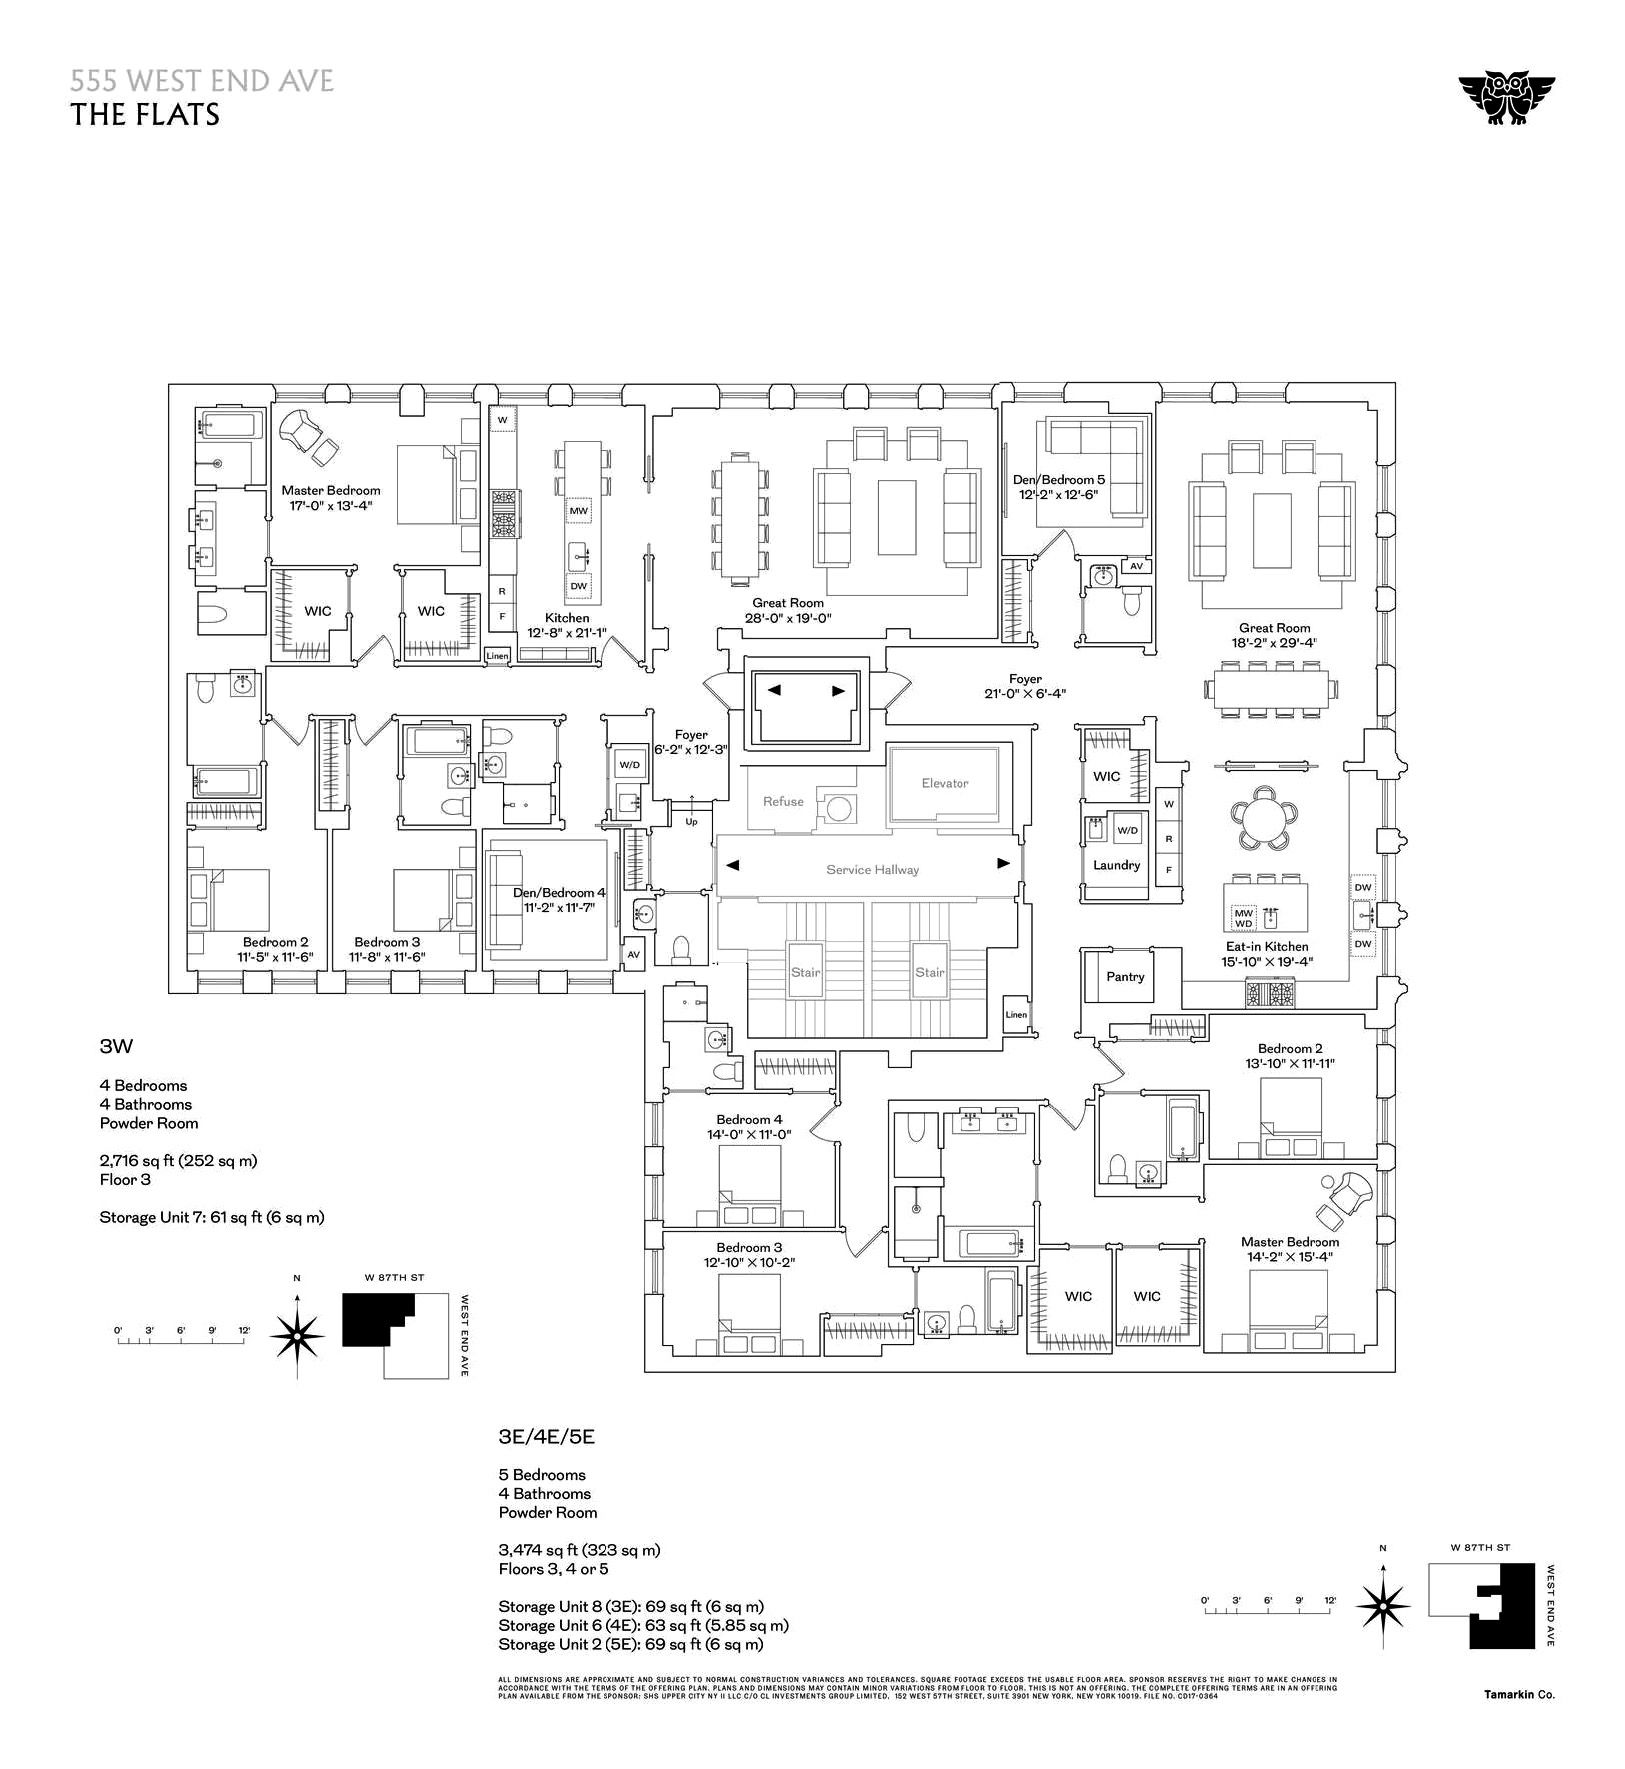 The Avenue By Executive Apartments: 555 West End Avenue The Flats